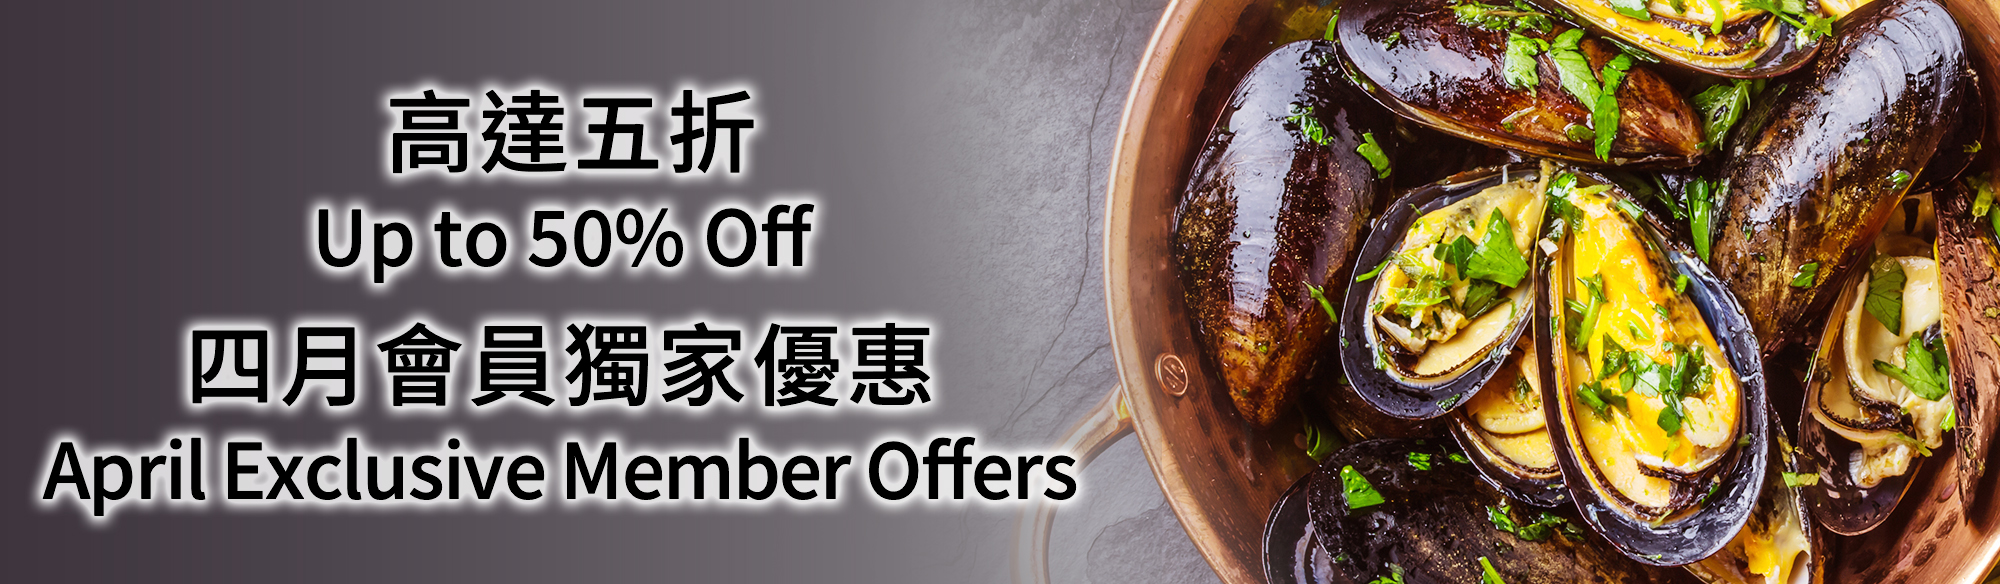 """Hong Kong and Macau Restaurant Buffet booking 餐廳和自助餐預訂香港和澳門_OKiBook 2020年4月""""會員獨家優惠"""" 高達5折/ April 2020 """"members only"""" dining offers – up to 50% off!"""